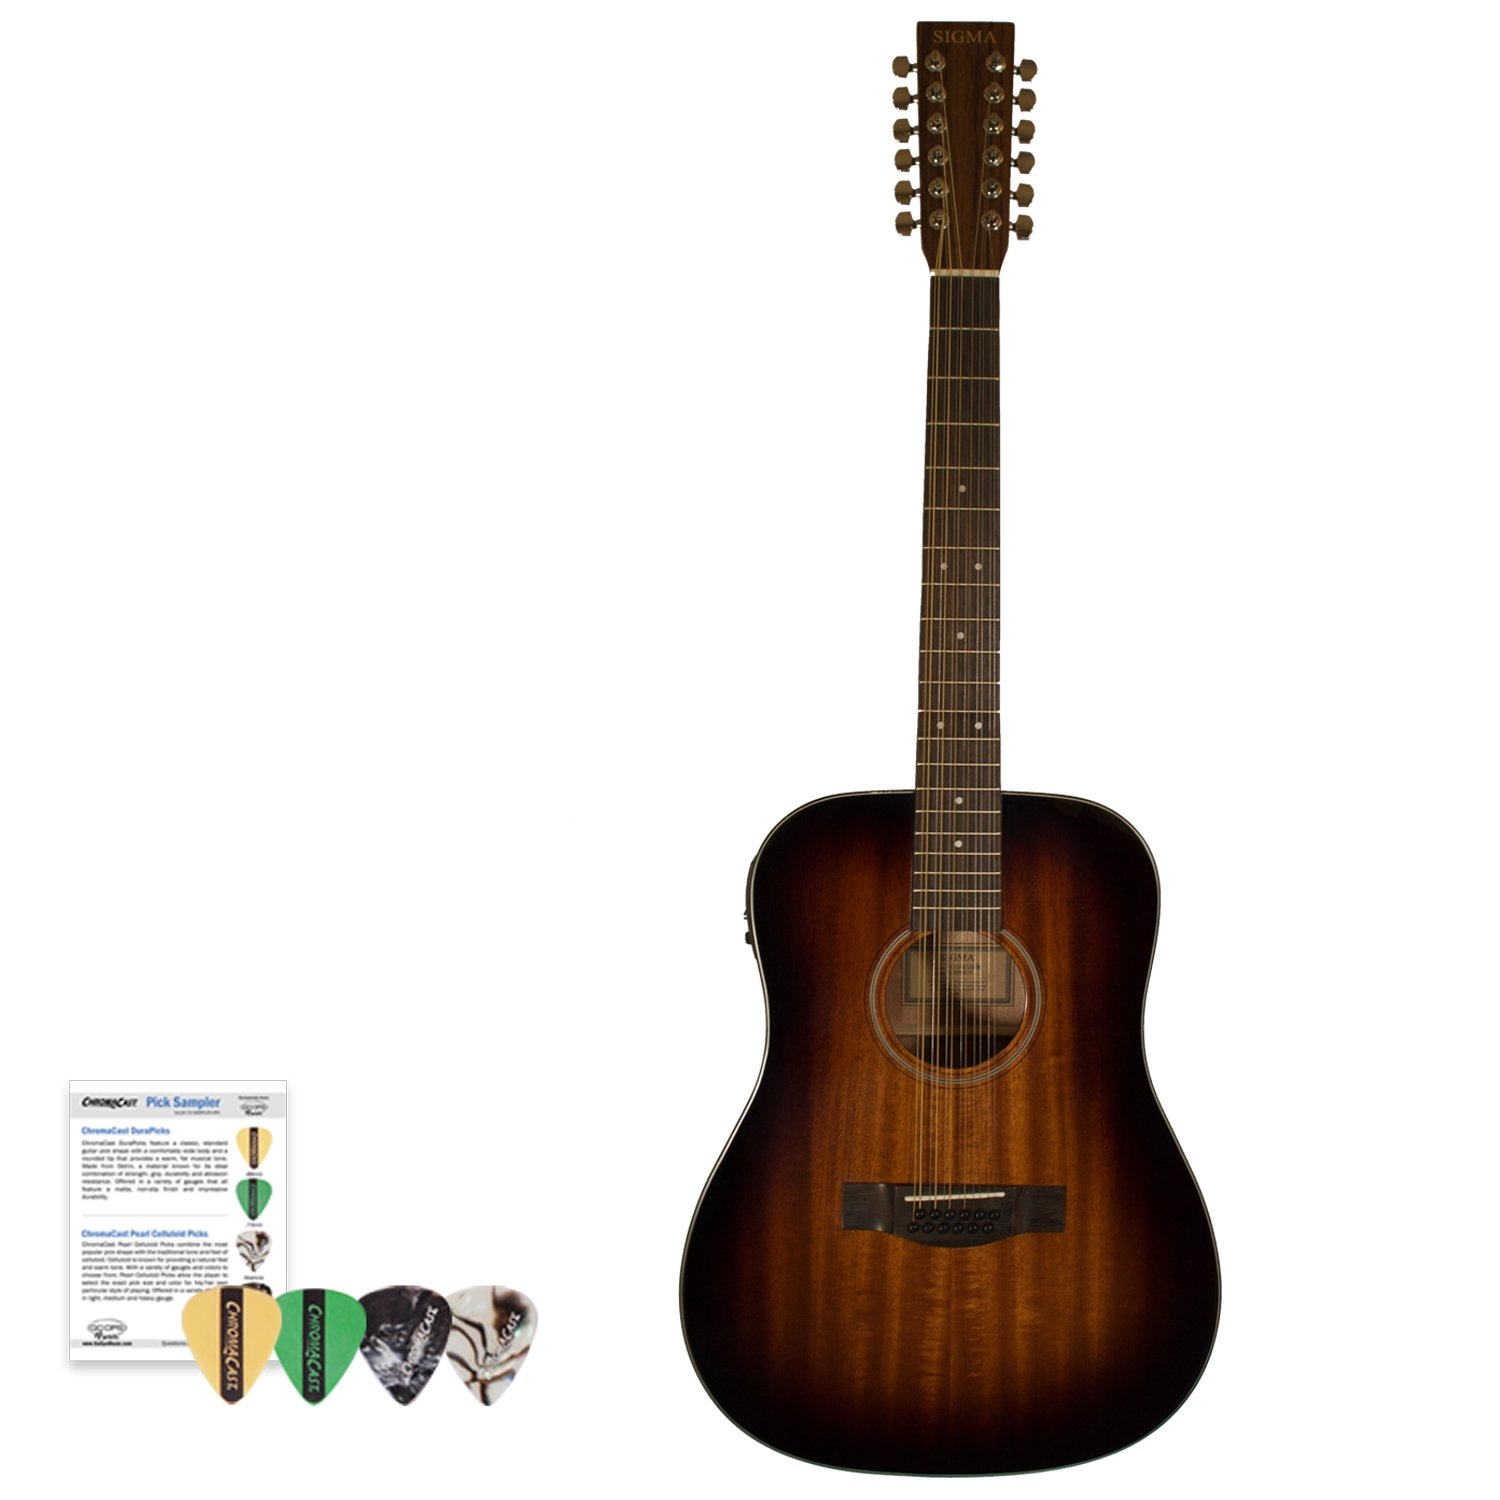 Sigma Guitars Mahogany Dreadnought 12-String Acoustic-Electric Guitar with ChromaCast 4 Pick Sampler, Shadowburst, Right Handed, Kit 1 (SD15ESHB-12) by Sigma